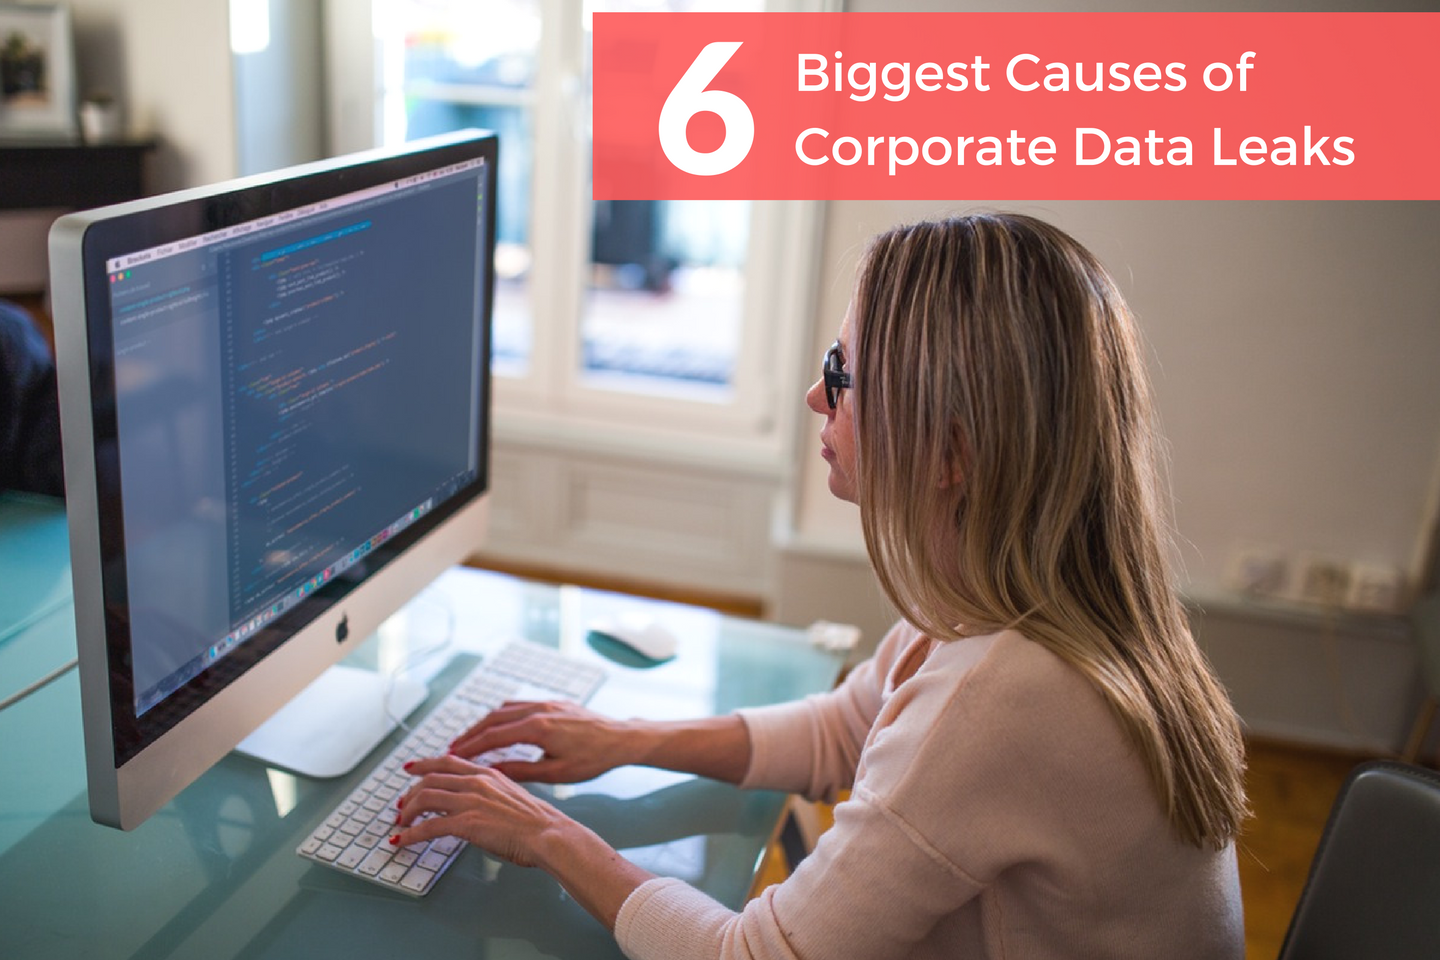 Main Causes of Data Leaks